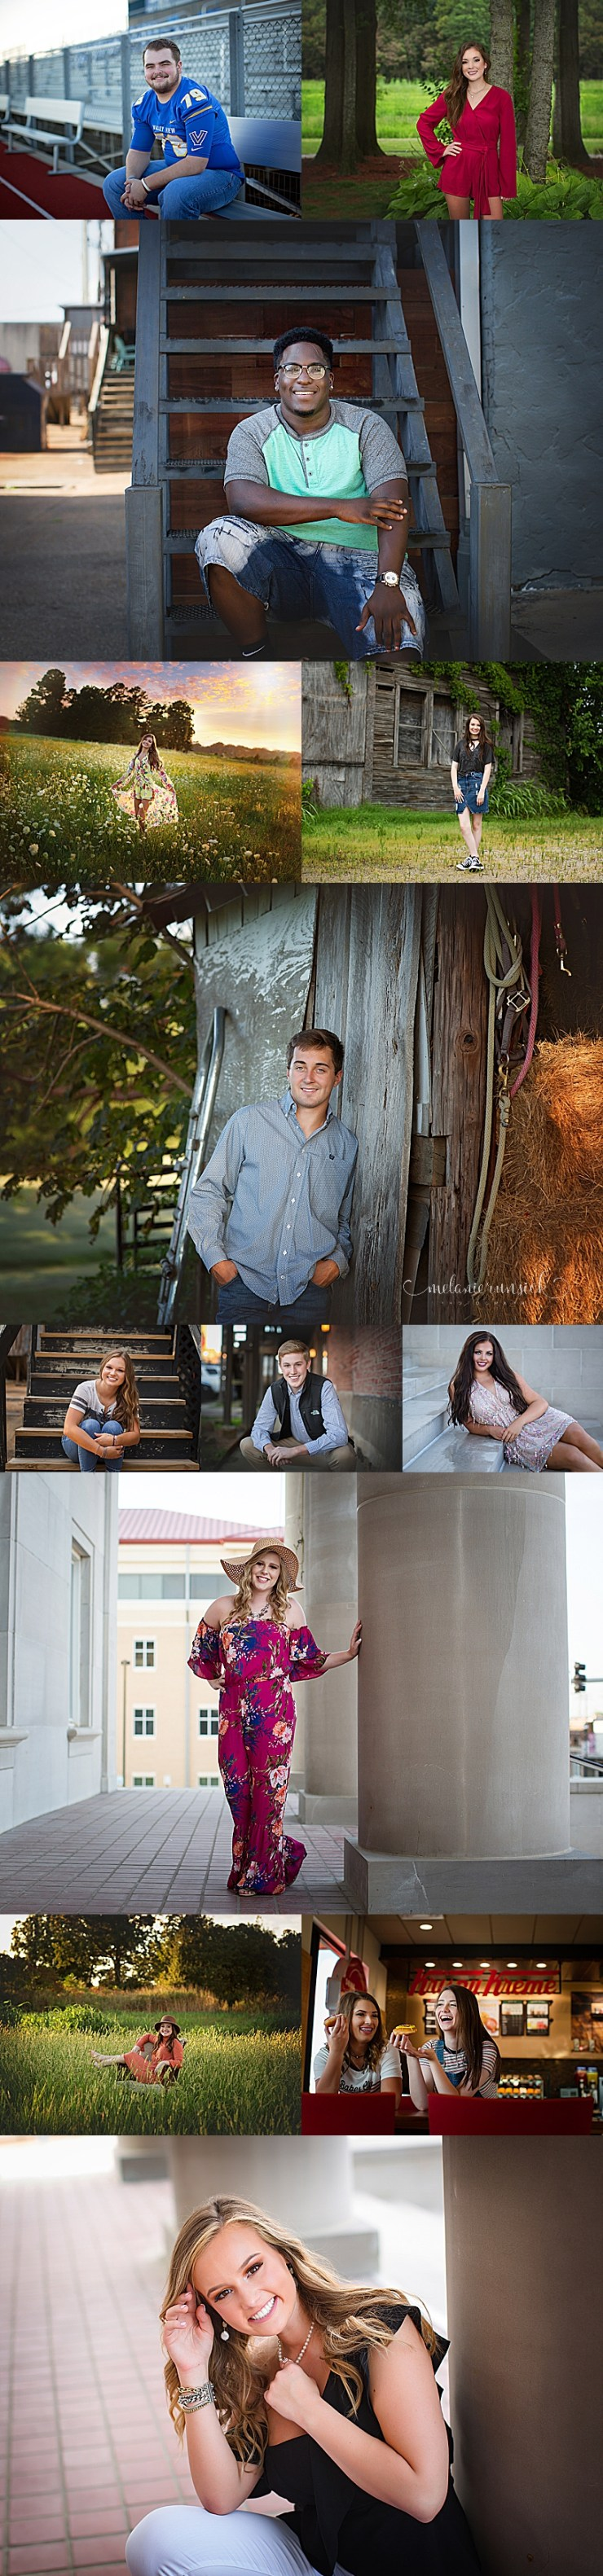 Jonesboro Senior Portrait Artist Melanie Runsick Photography